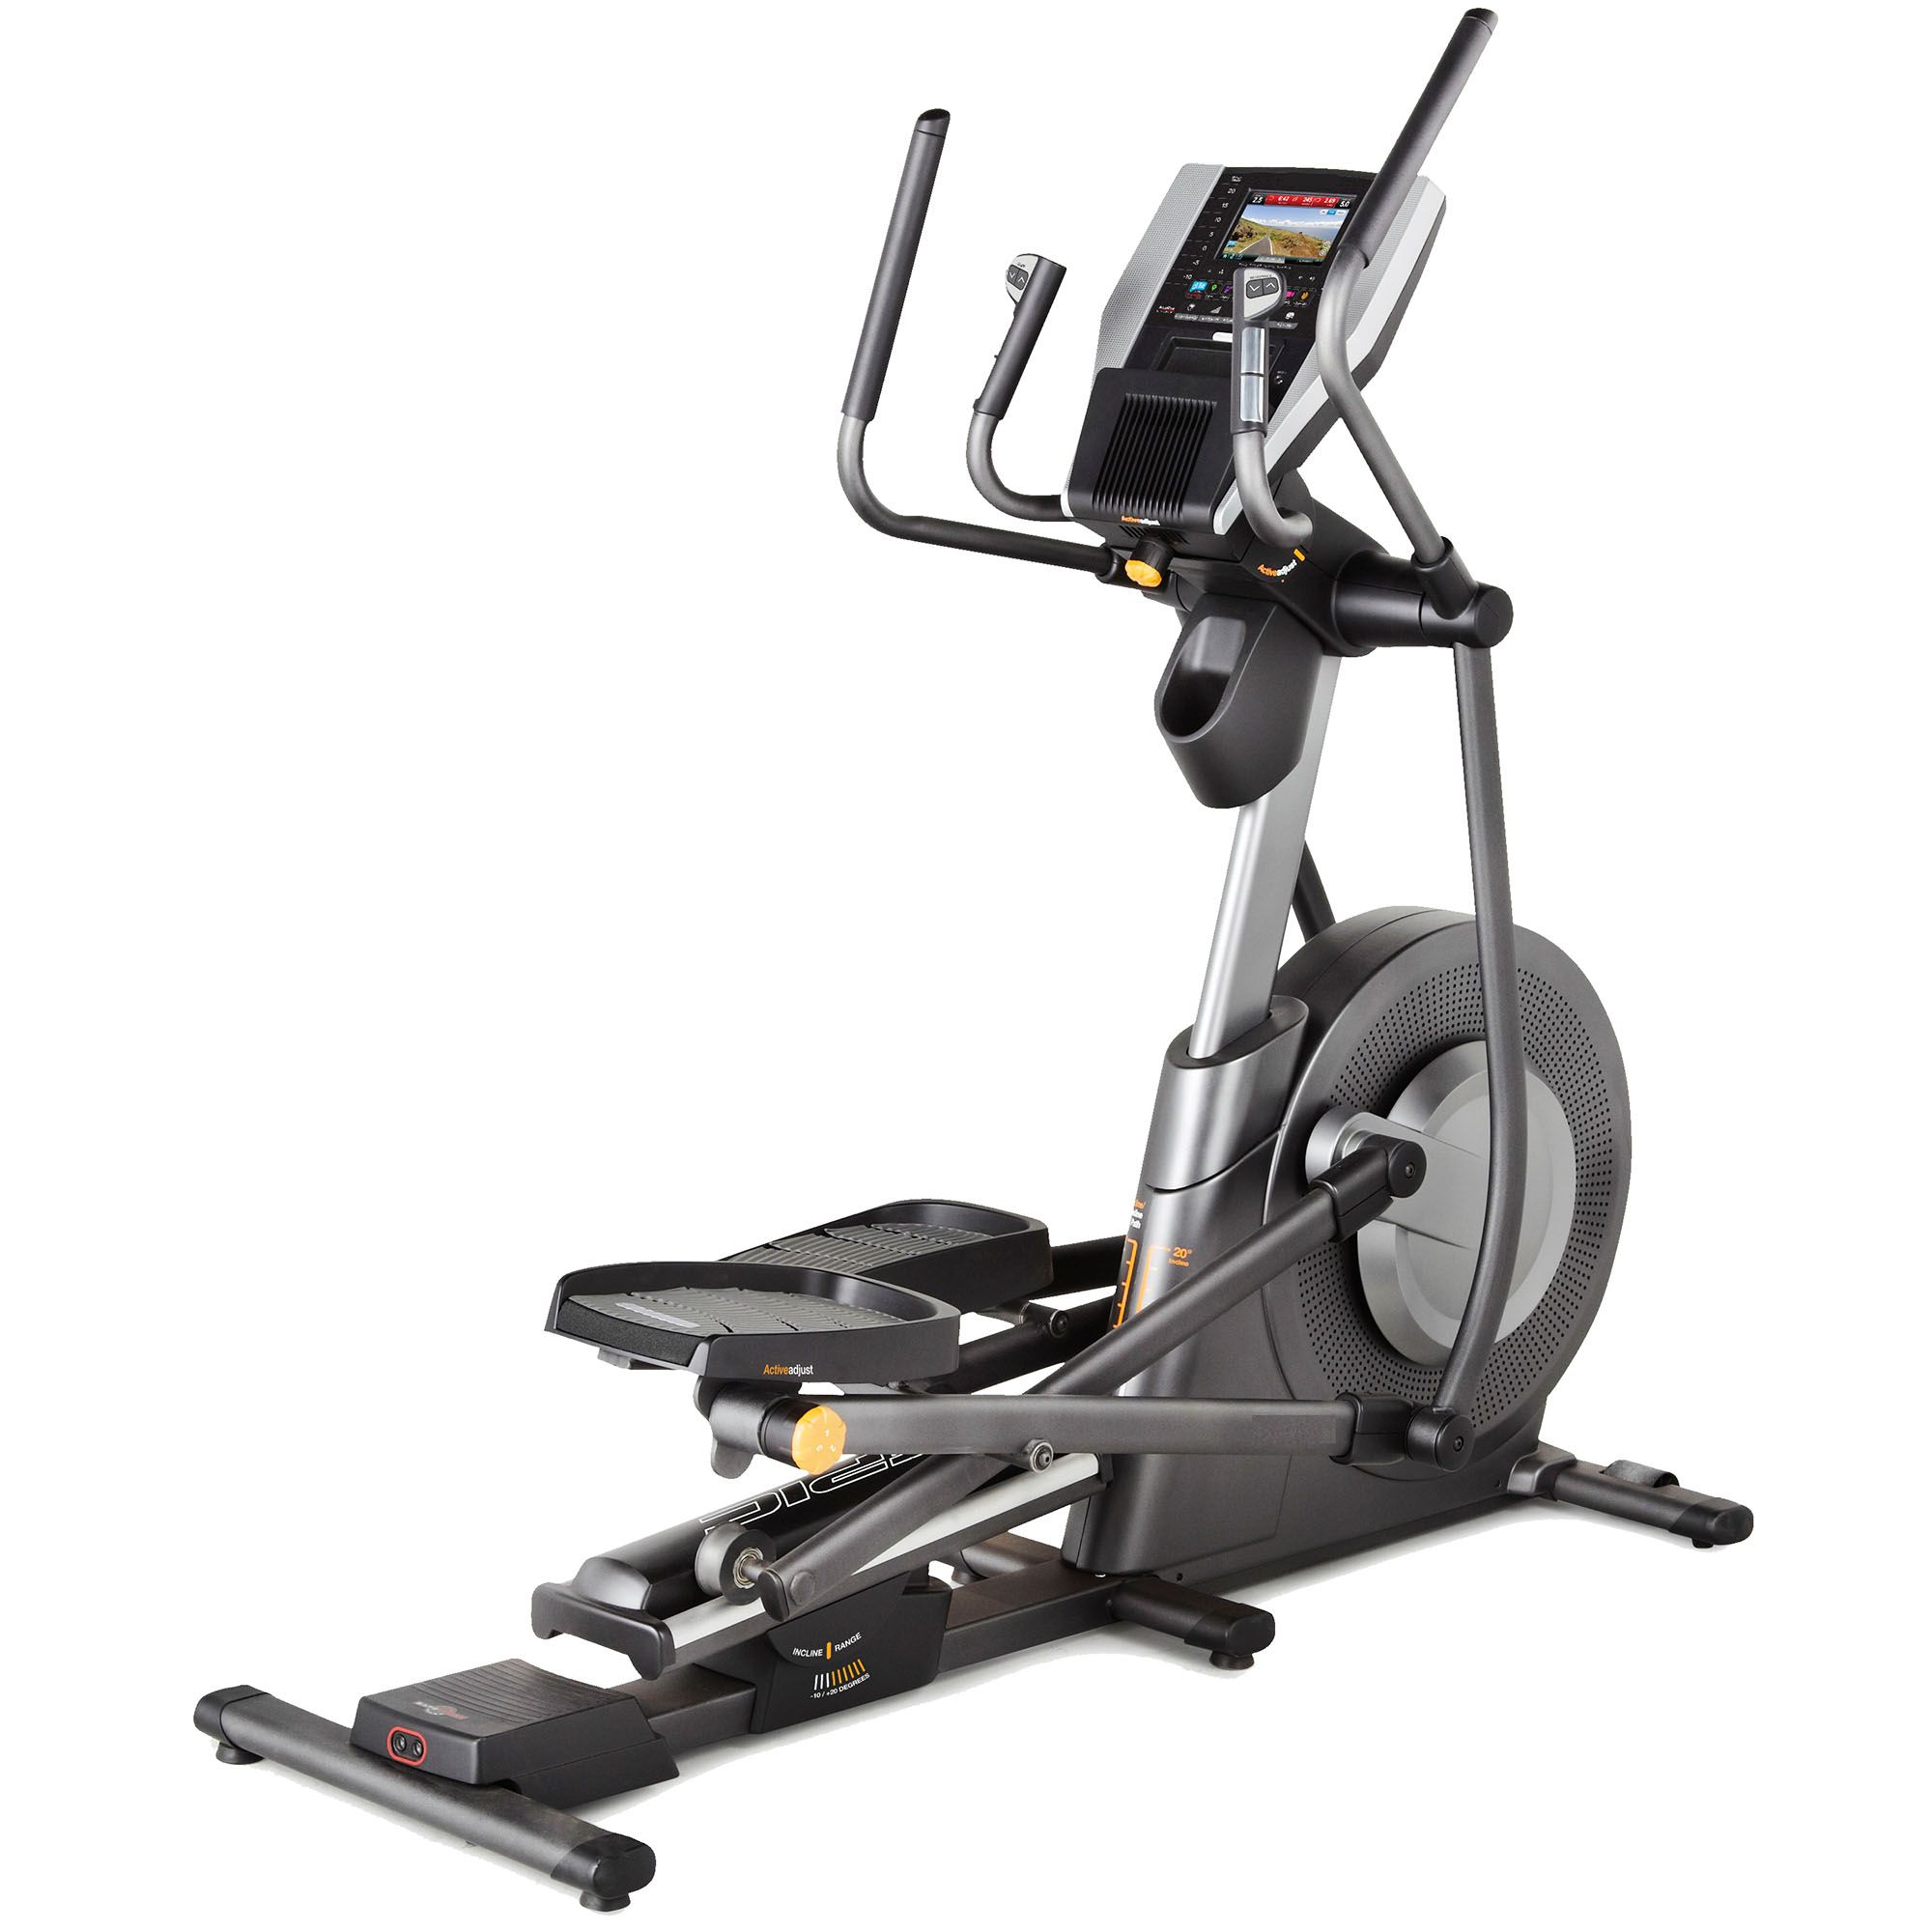 NordicTrack E14.0 Elliptical Cross Trainer